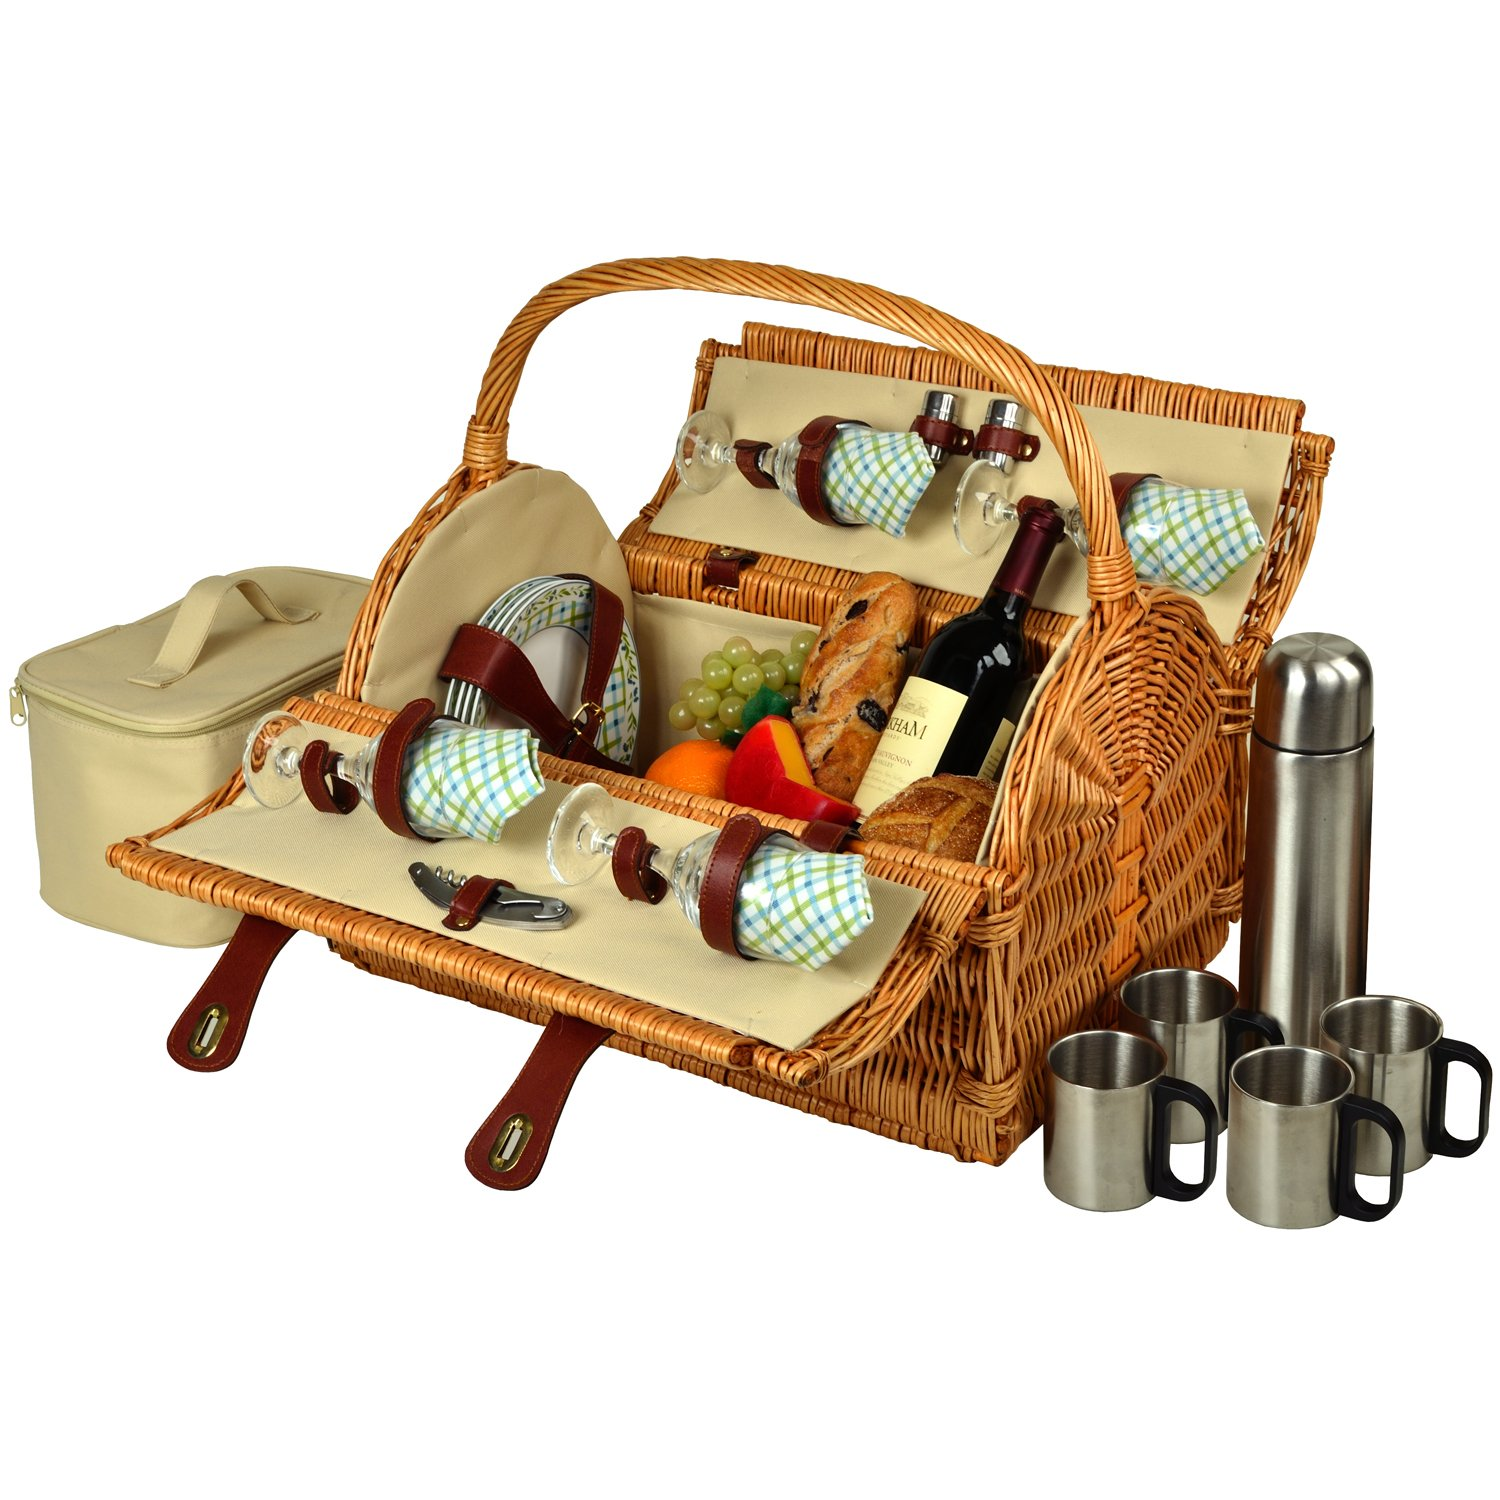 Picnic at Ascot Yorkshire Willow Picnic Basket with Service for 4, with Coffee Set - Gazebo